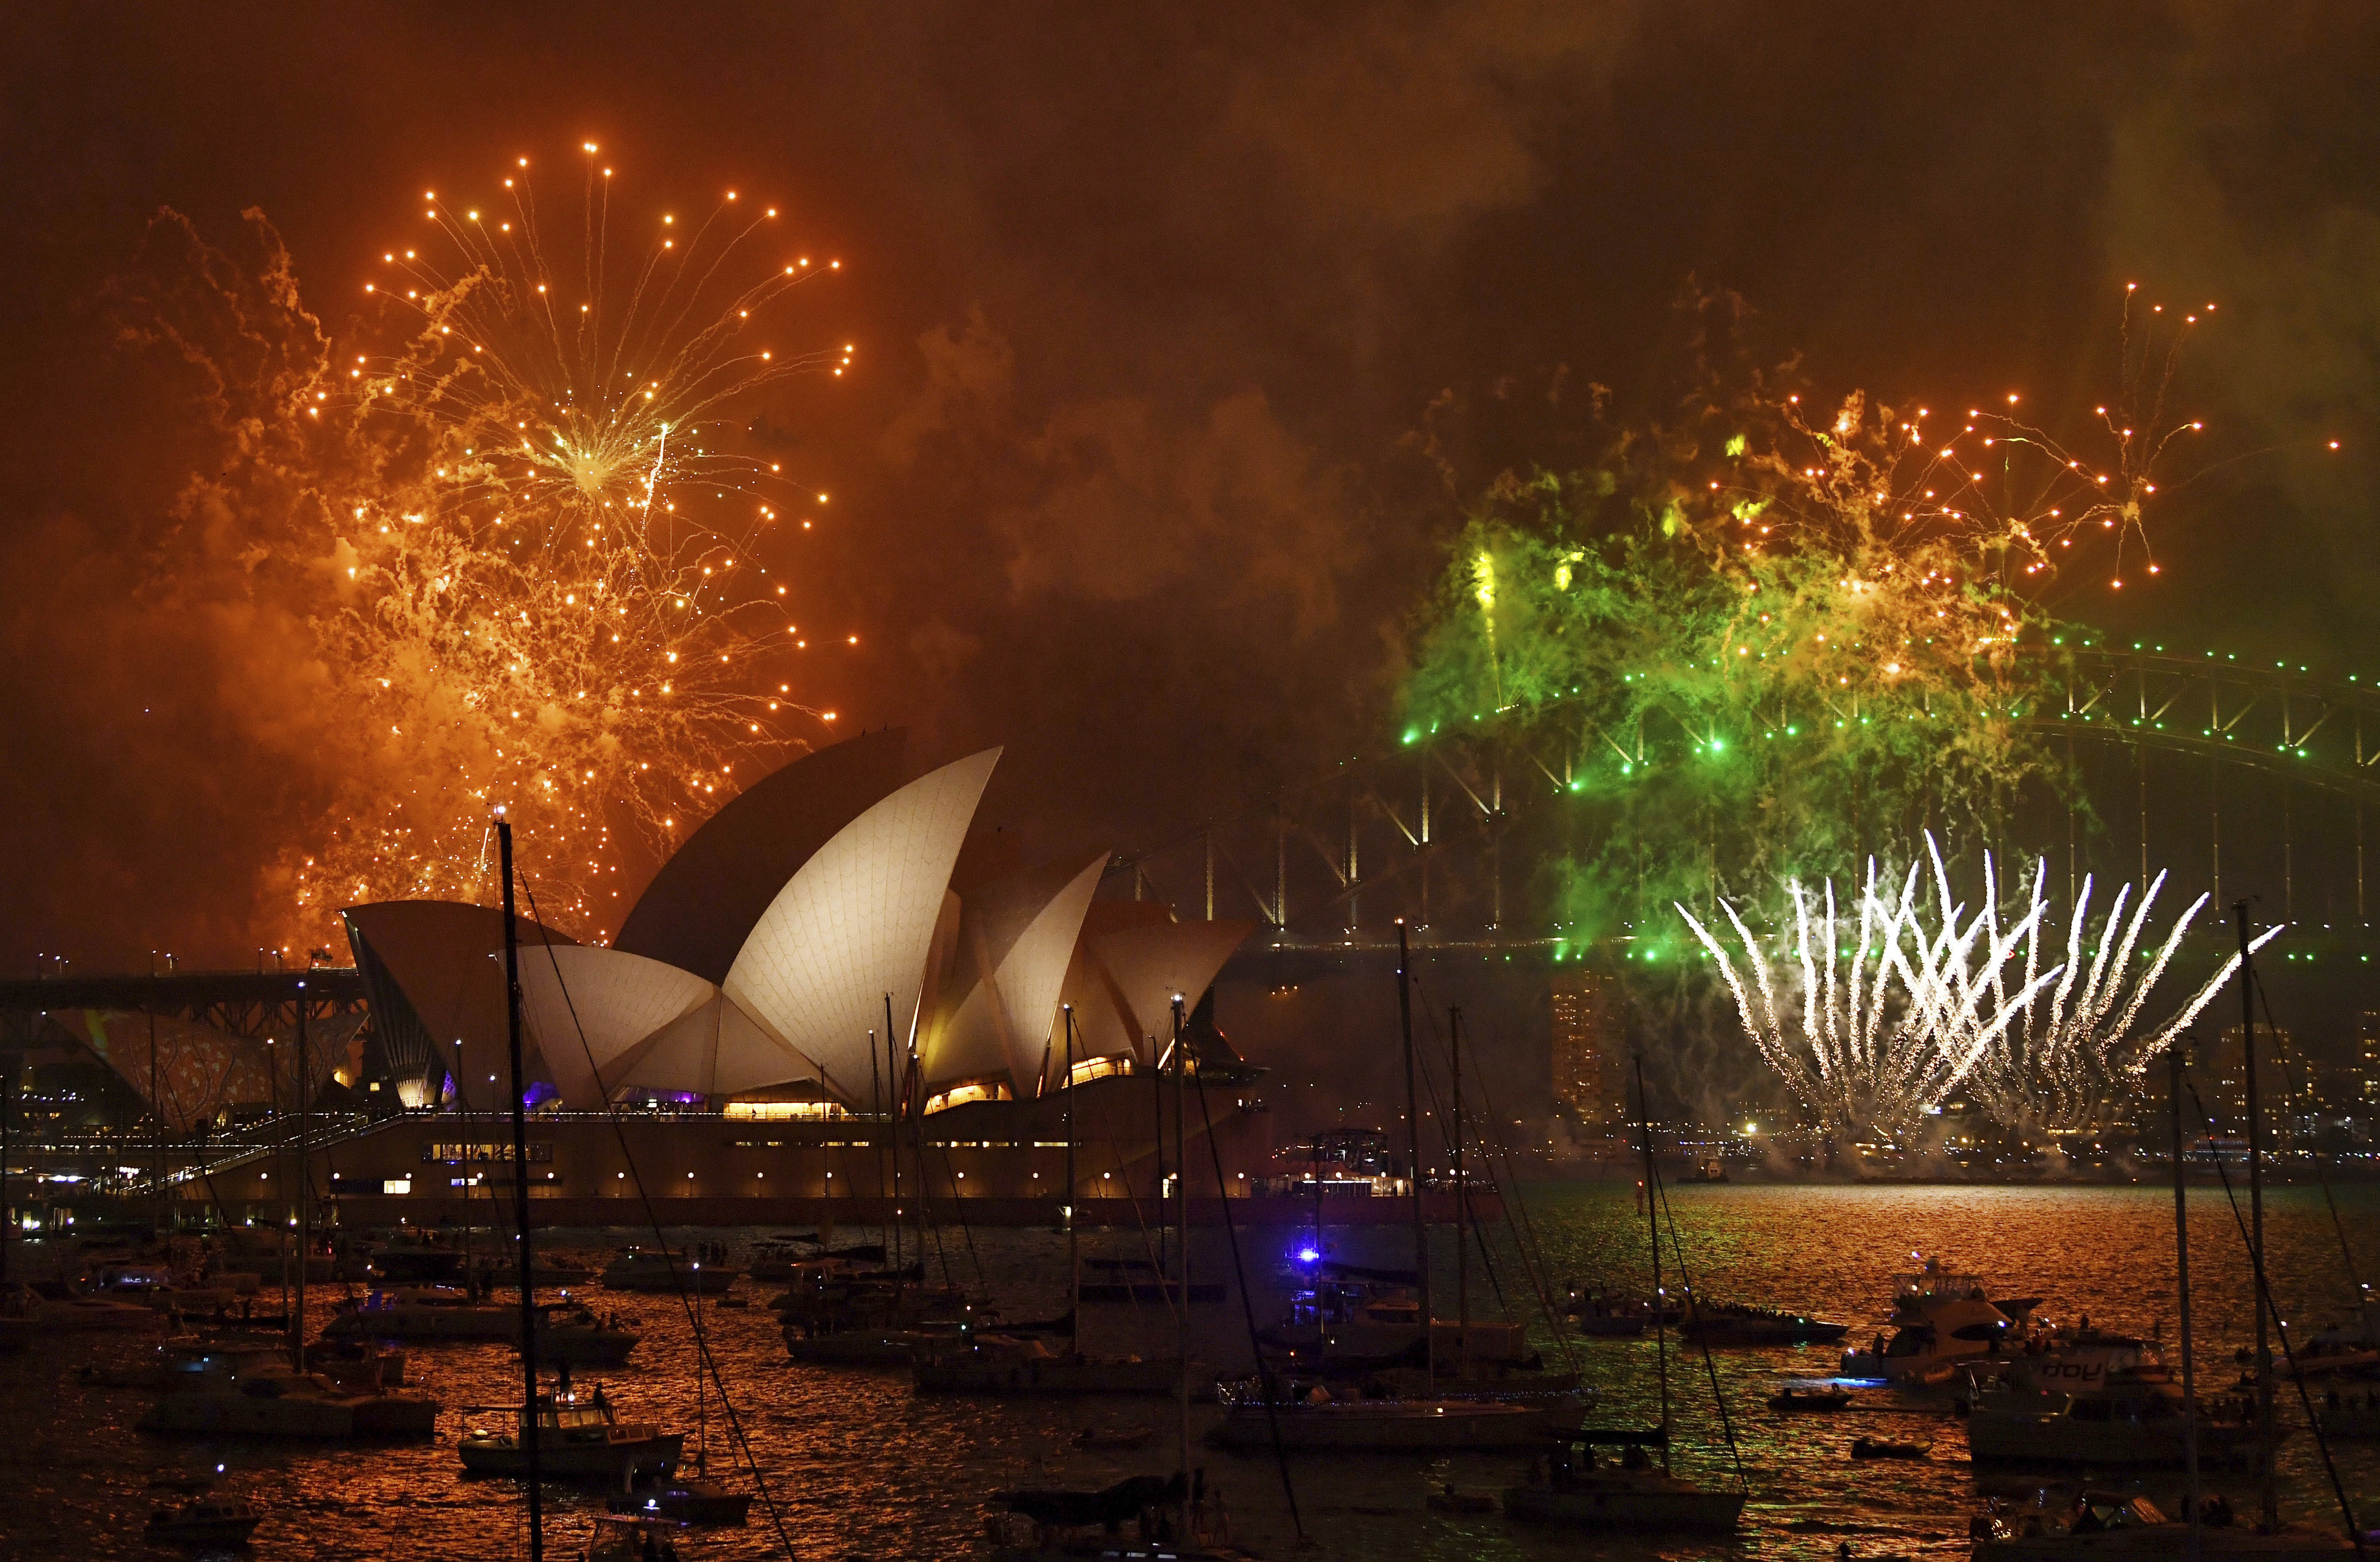 <div class='meta'><div class='origin-logo' data-origin='AP'></div><span class='caption-text' data-credit='David Moir/AAP Image via AP'>Fireworks explode over Sydney Harbour during New Year's Eve celebrations in Sydney, Australia, Sunday, Dec. 31, 2017.</span></div>